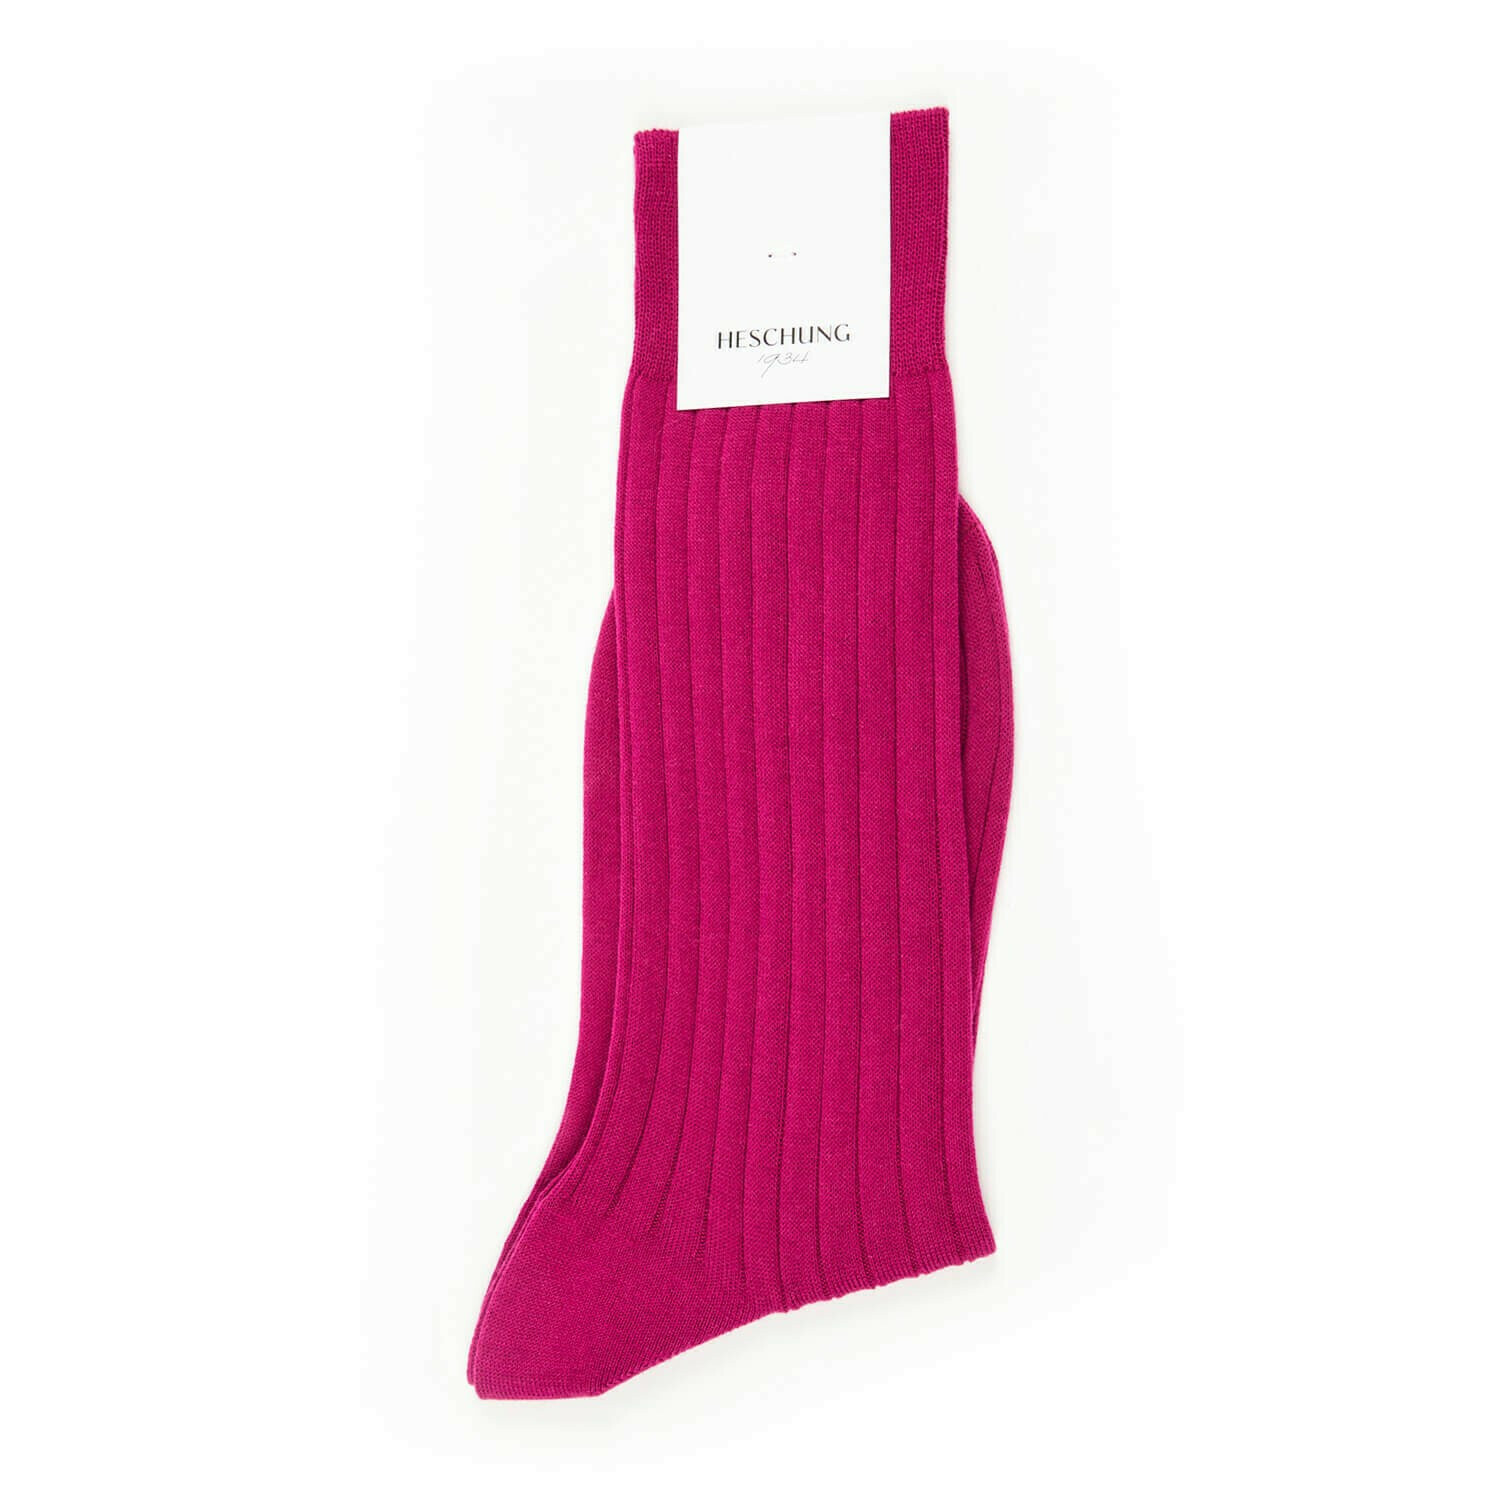 SOCKS Crimson Coton